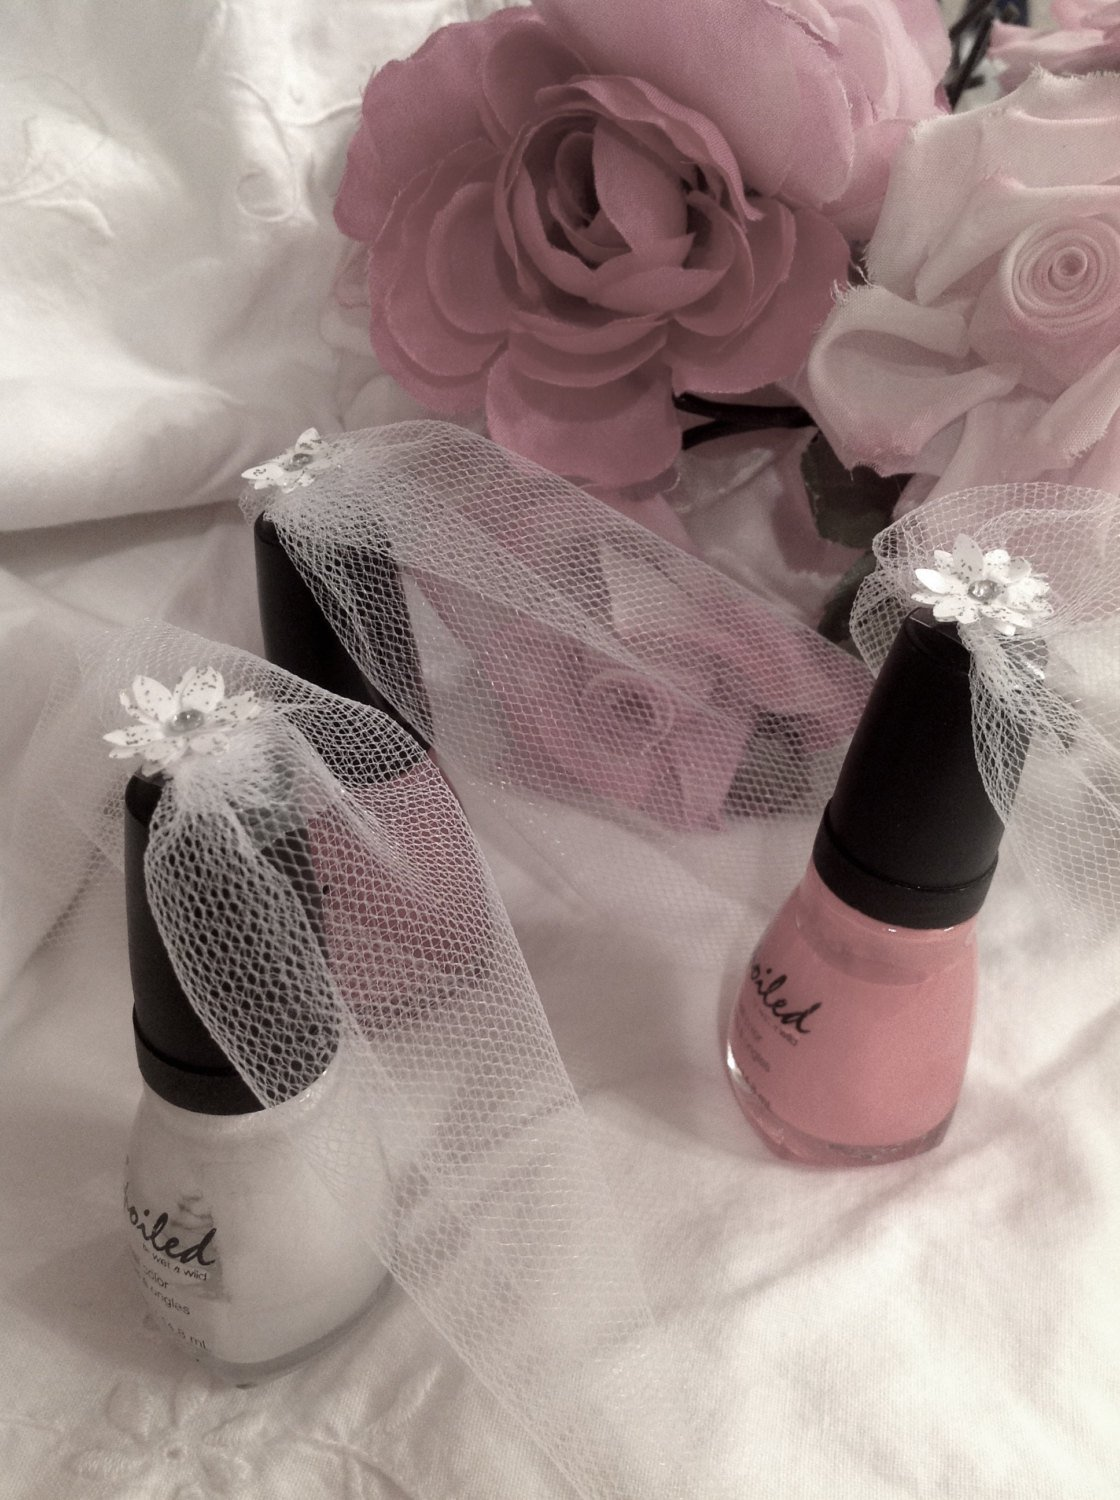 Bridal Veil Nail Polish, will you be my bridesmaid